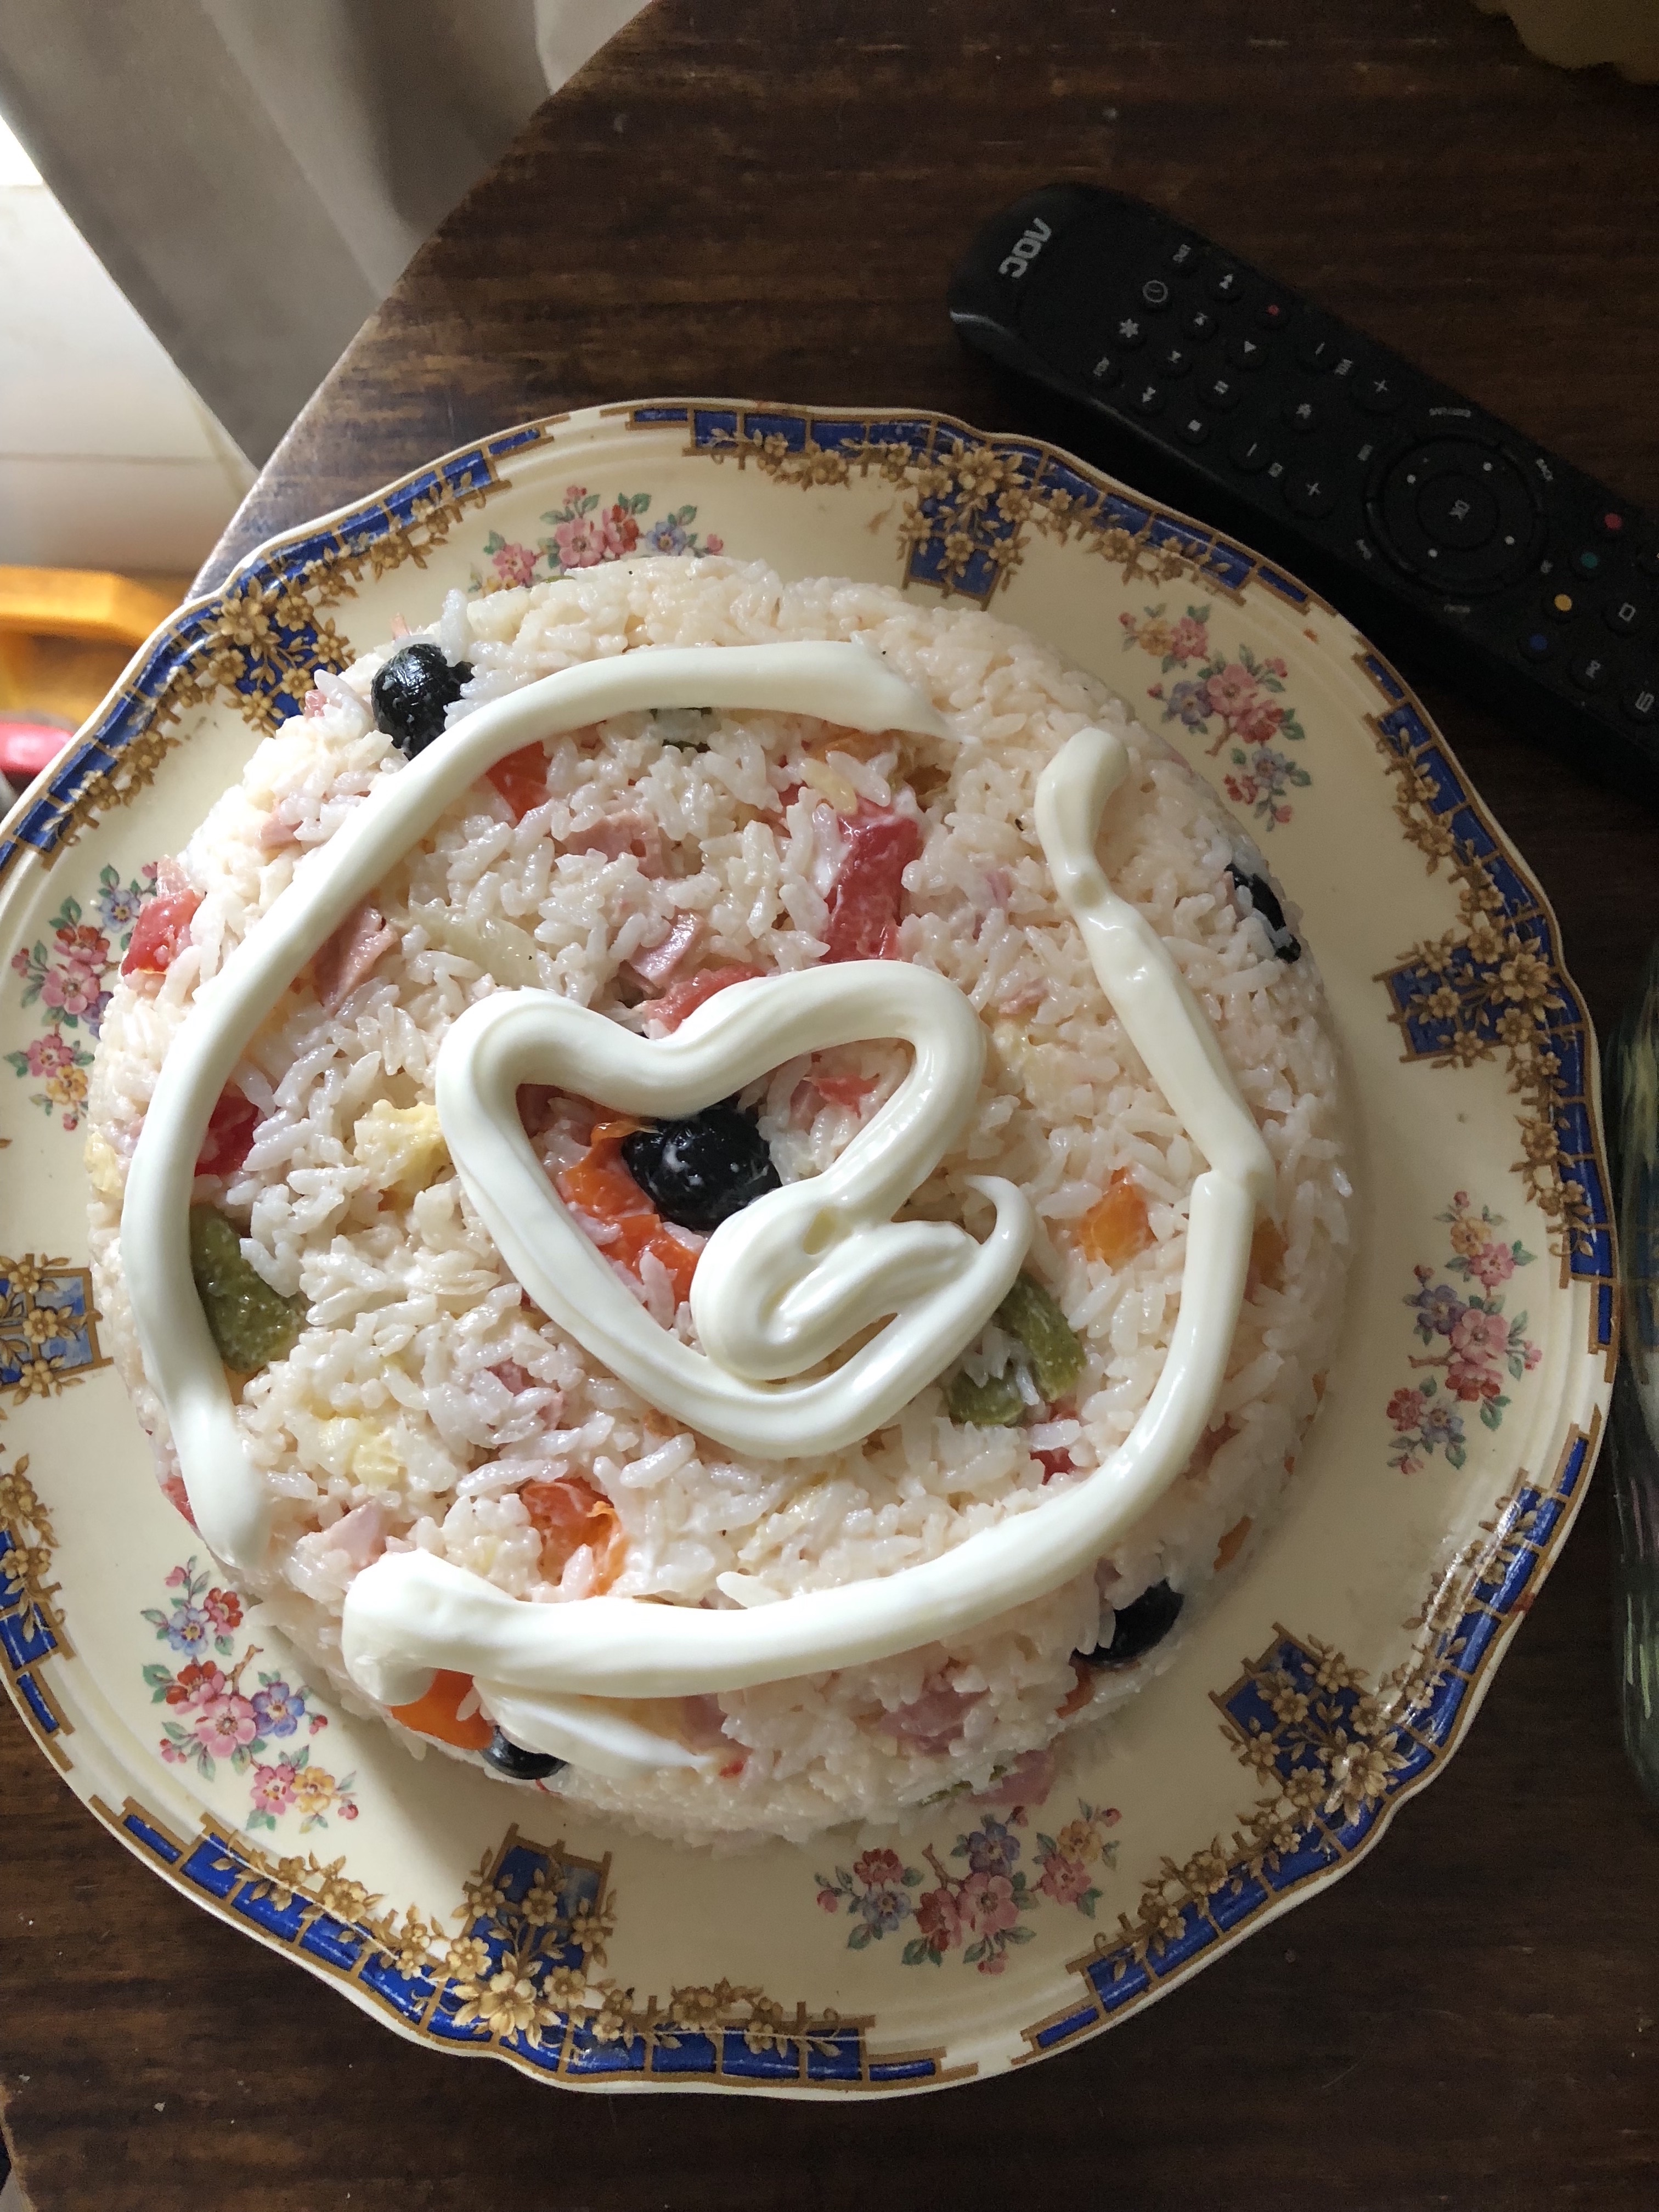 A dish of rice garnished with mayonnaise in the shape of a heart